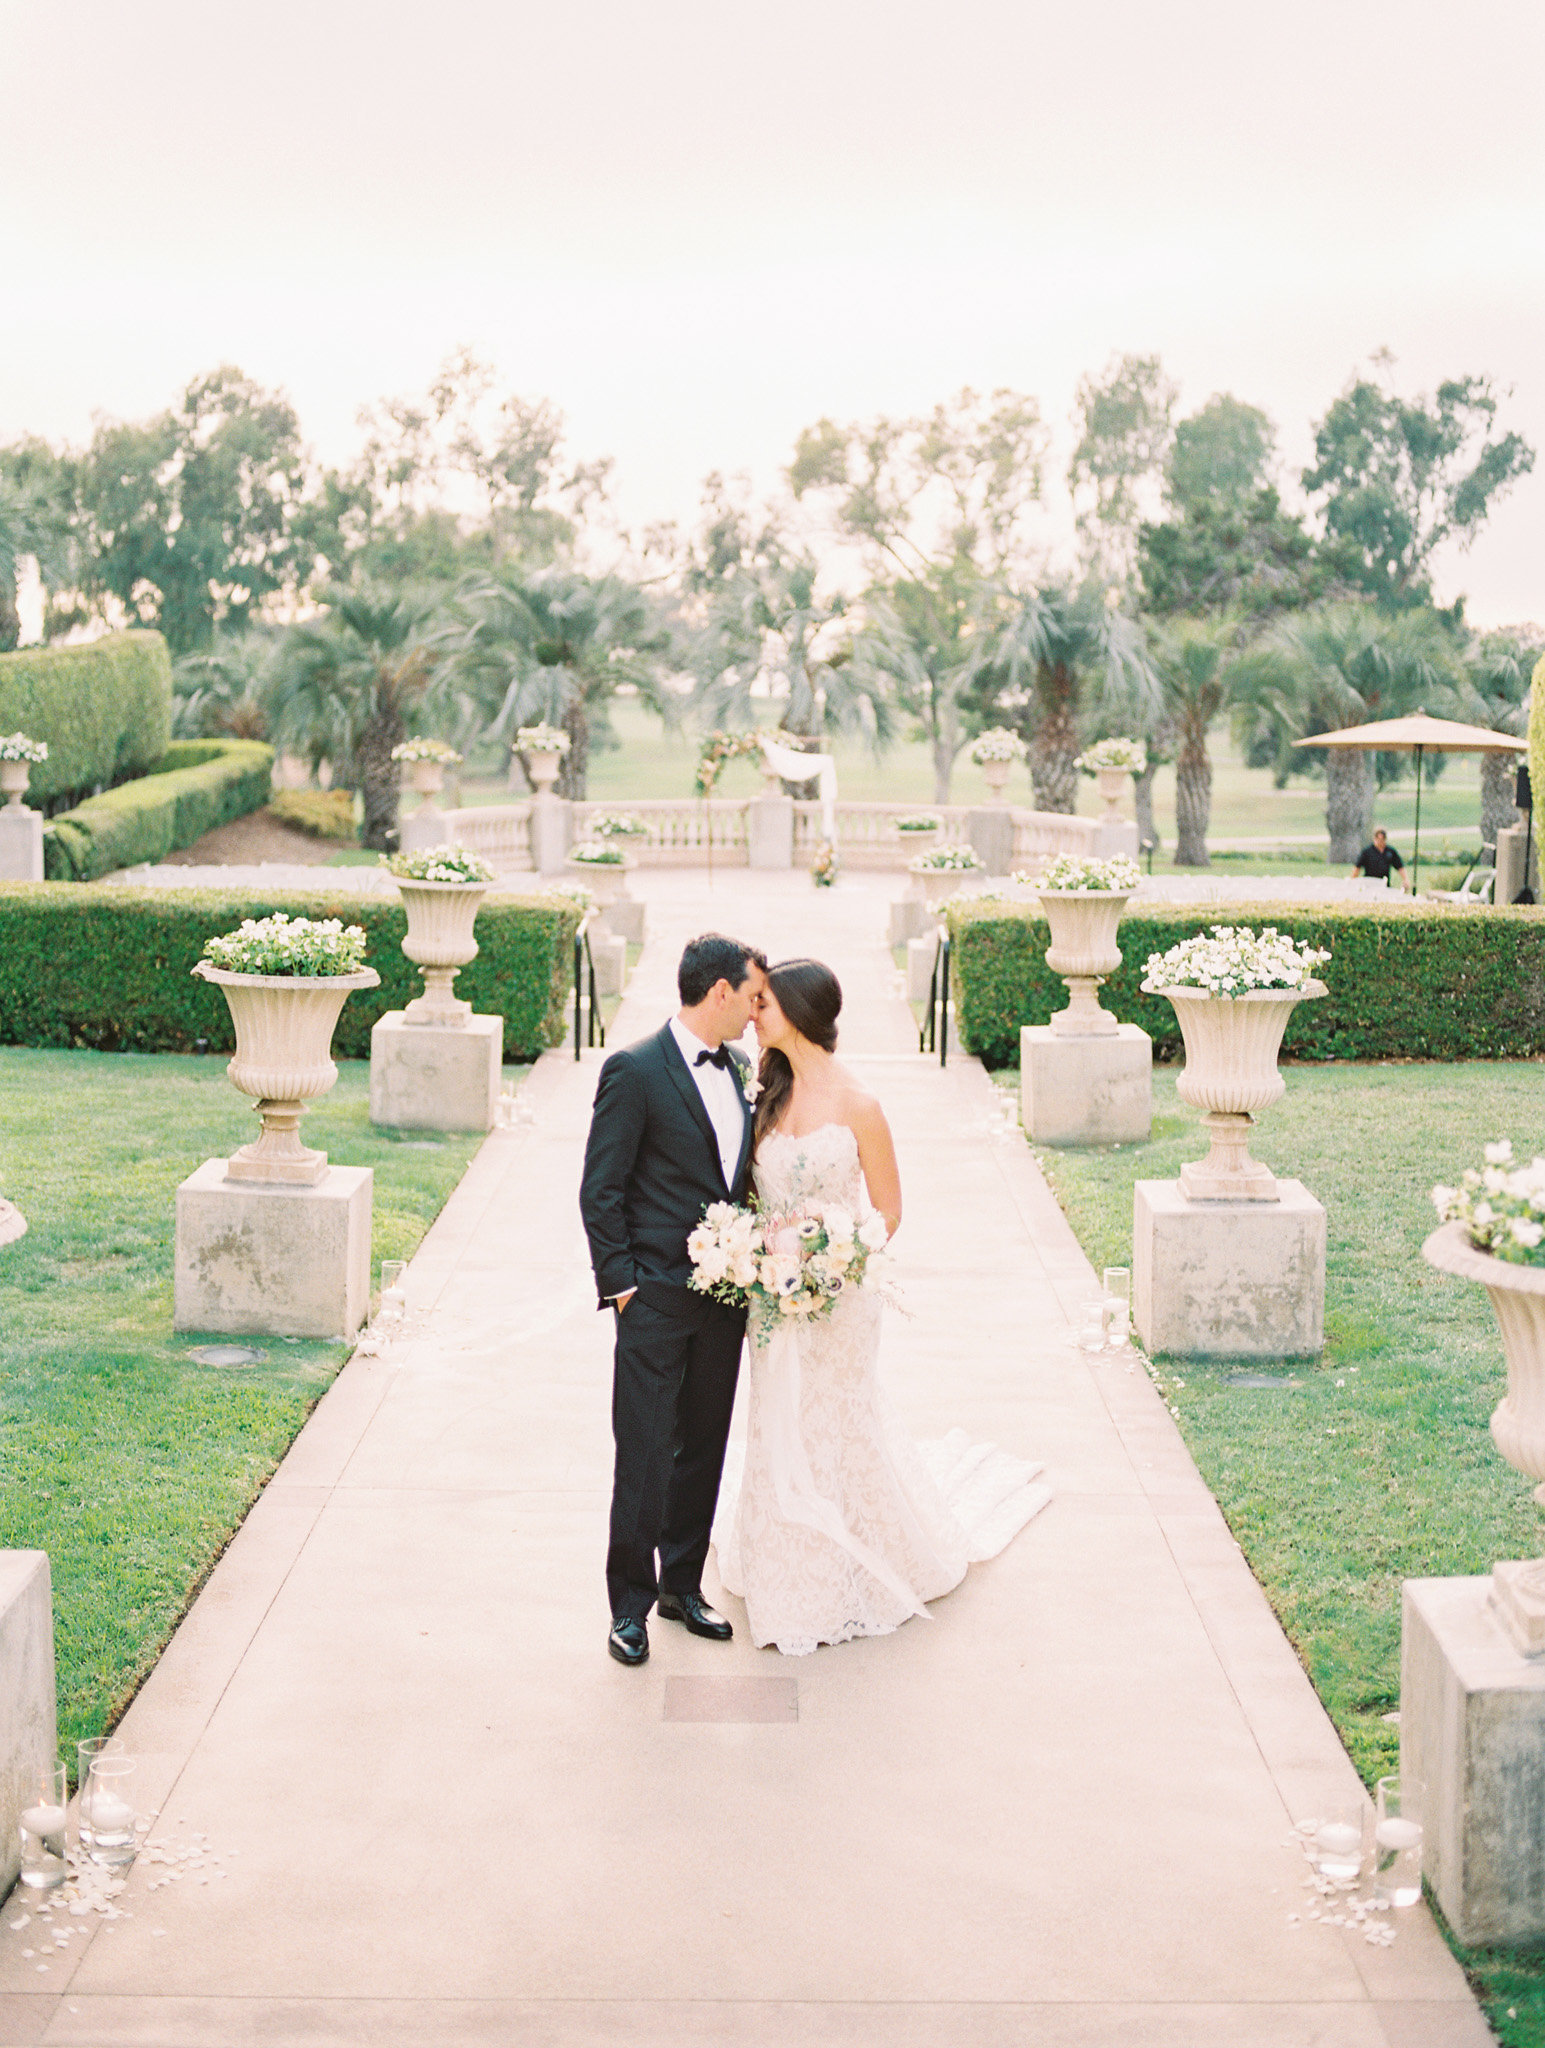 Hilton La Jolla Torrey Pines Wedding